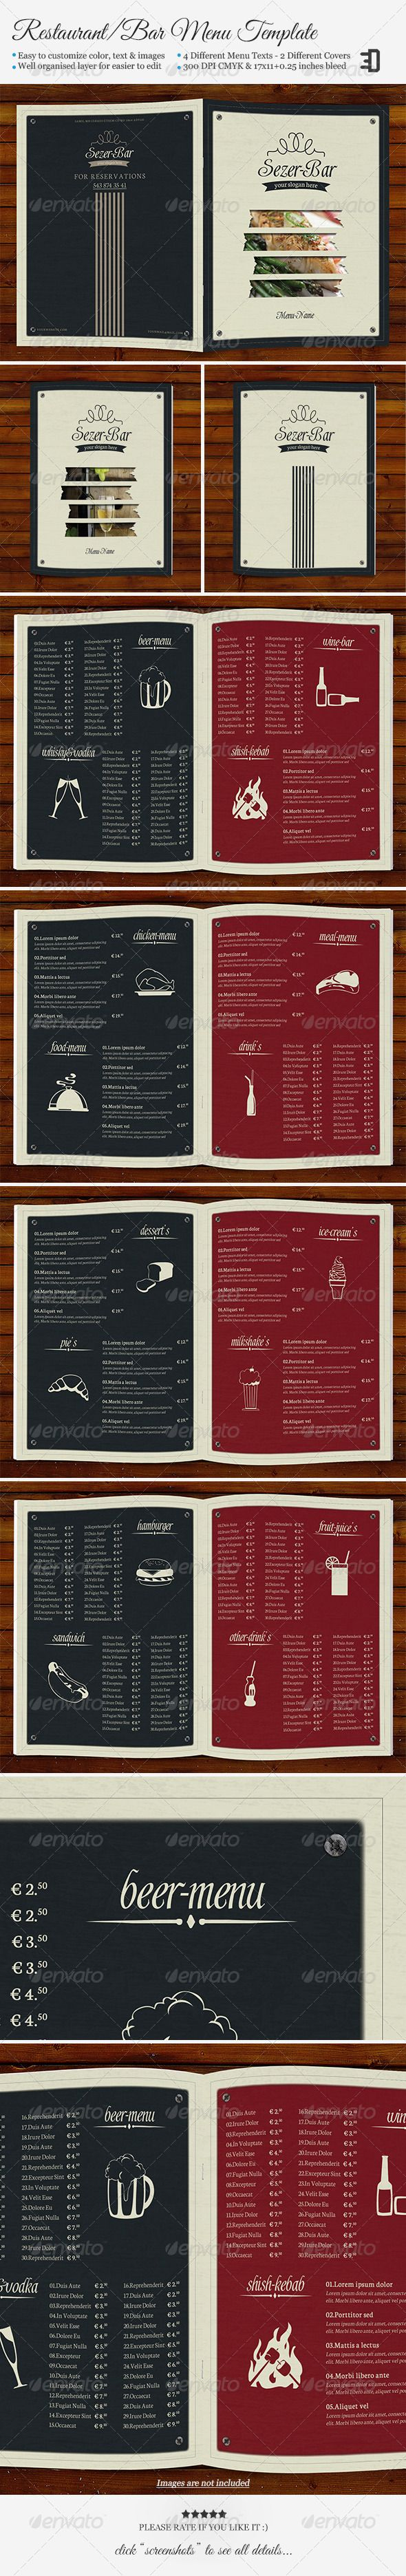 """Restaurant/Bar Menu Template #GraphicRiver FEATURES 2 PSD files; menu objects 1 Info.txt 4 different menu texts 2 different covers Easy to customize Editable fonts/text/color Well organized layer Food symbols included Images are not included DIMENSIONS 17"""" x 11"""" (Open) 8.5"""" x 11"""" (Close) 0.25"""" bleed 300 DPI CMYK FREE FONTS Shardee Neuton Food Bergamot Ornaments Preview Video Video Created: 2October13 GraphicsFilesIncluded: PhotoshopPSD Layered: Yes MinimumAdobeCSVersion: CS PrintDimensions…"""